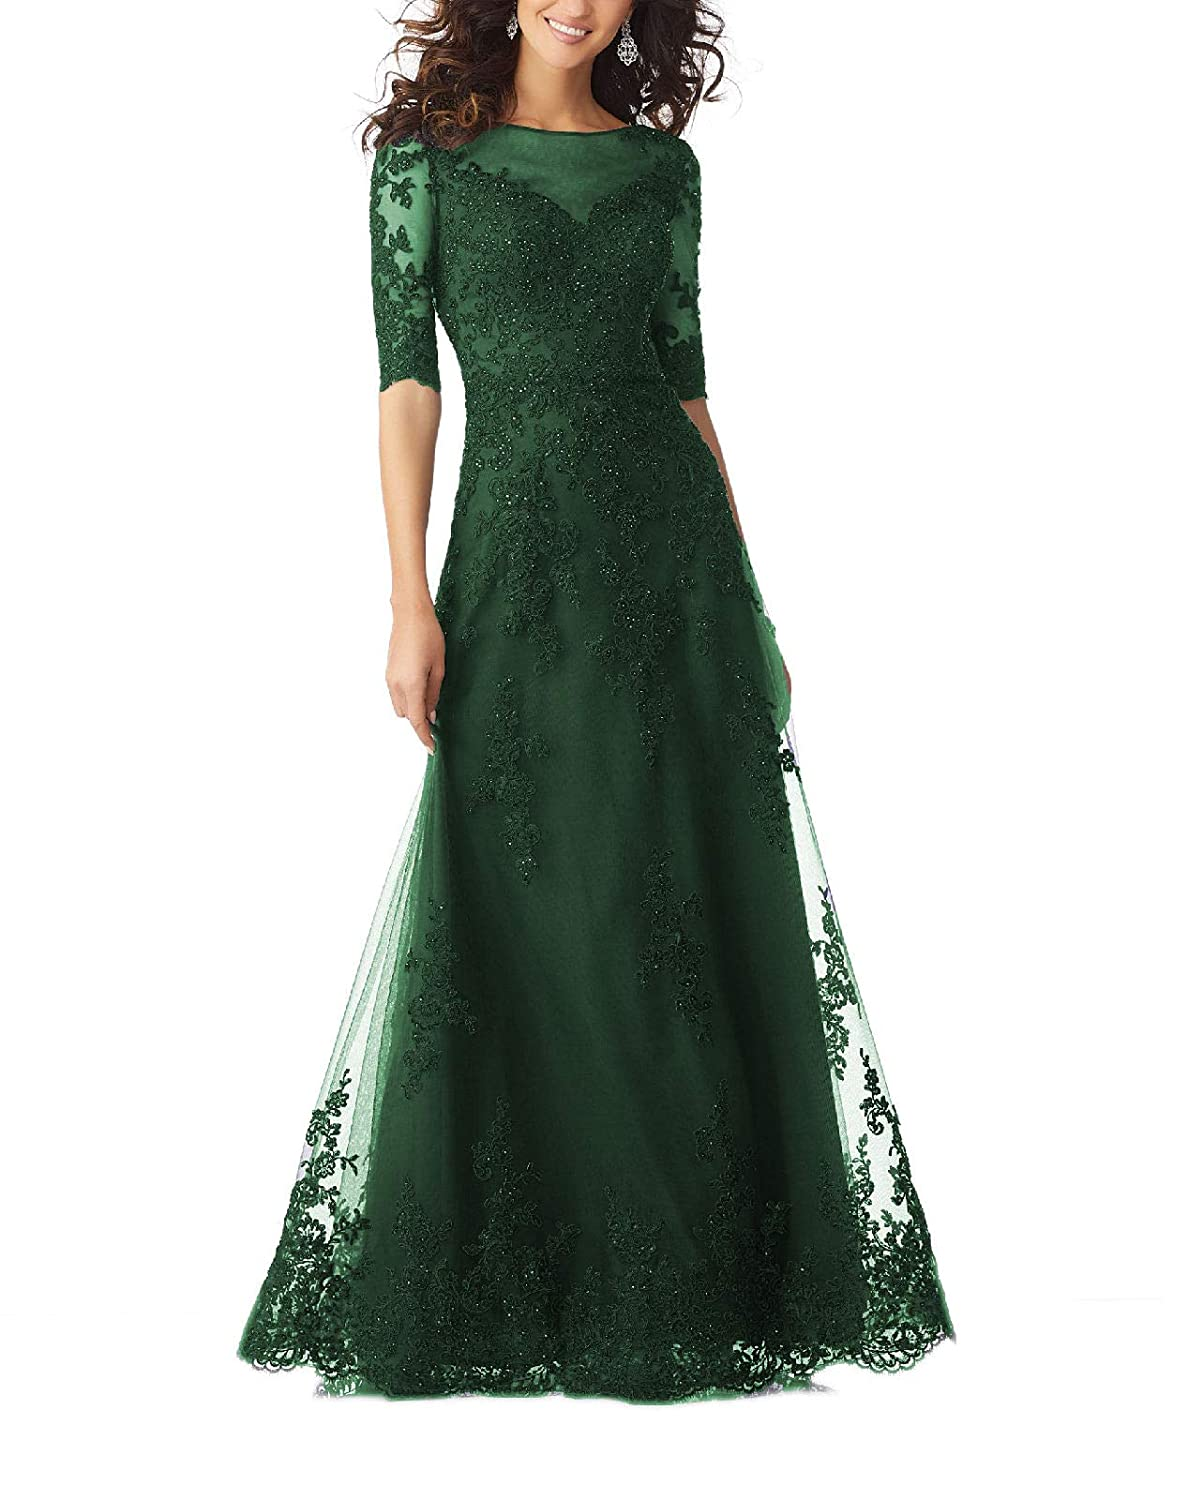 Darkgreen Yisha Bello Women's V Neck Lace Appliques Mother of The Bride Dress Tulle Beaded Half Sleeve Evening Formal Gowns